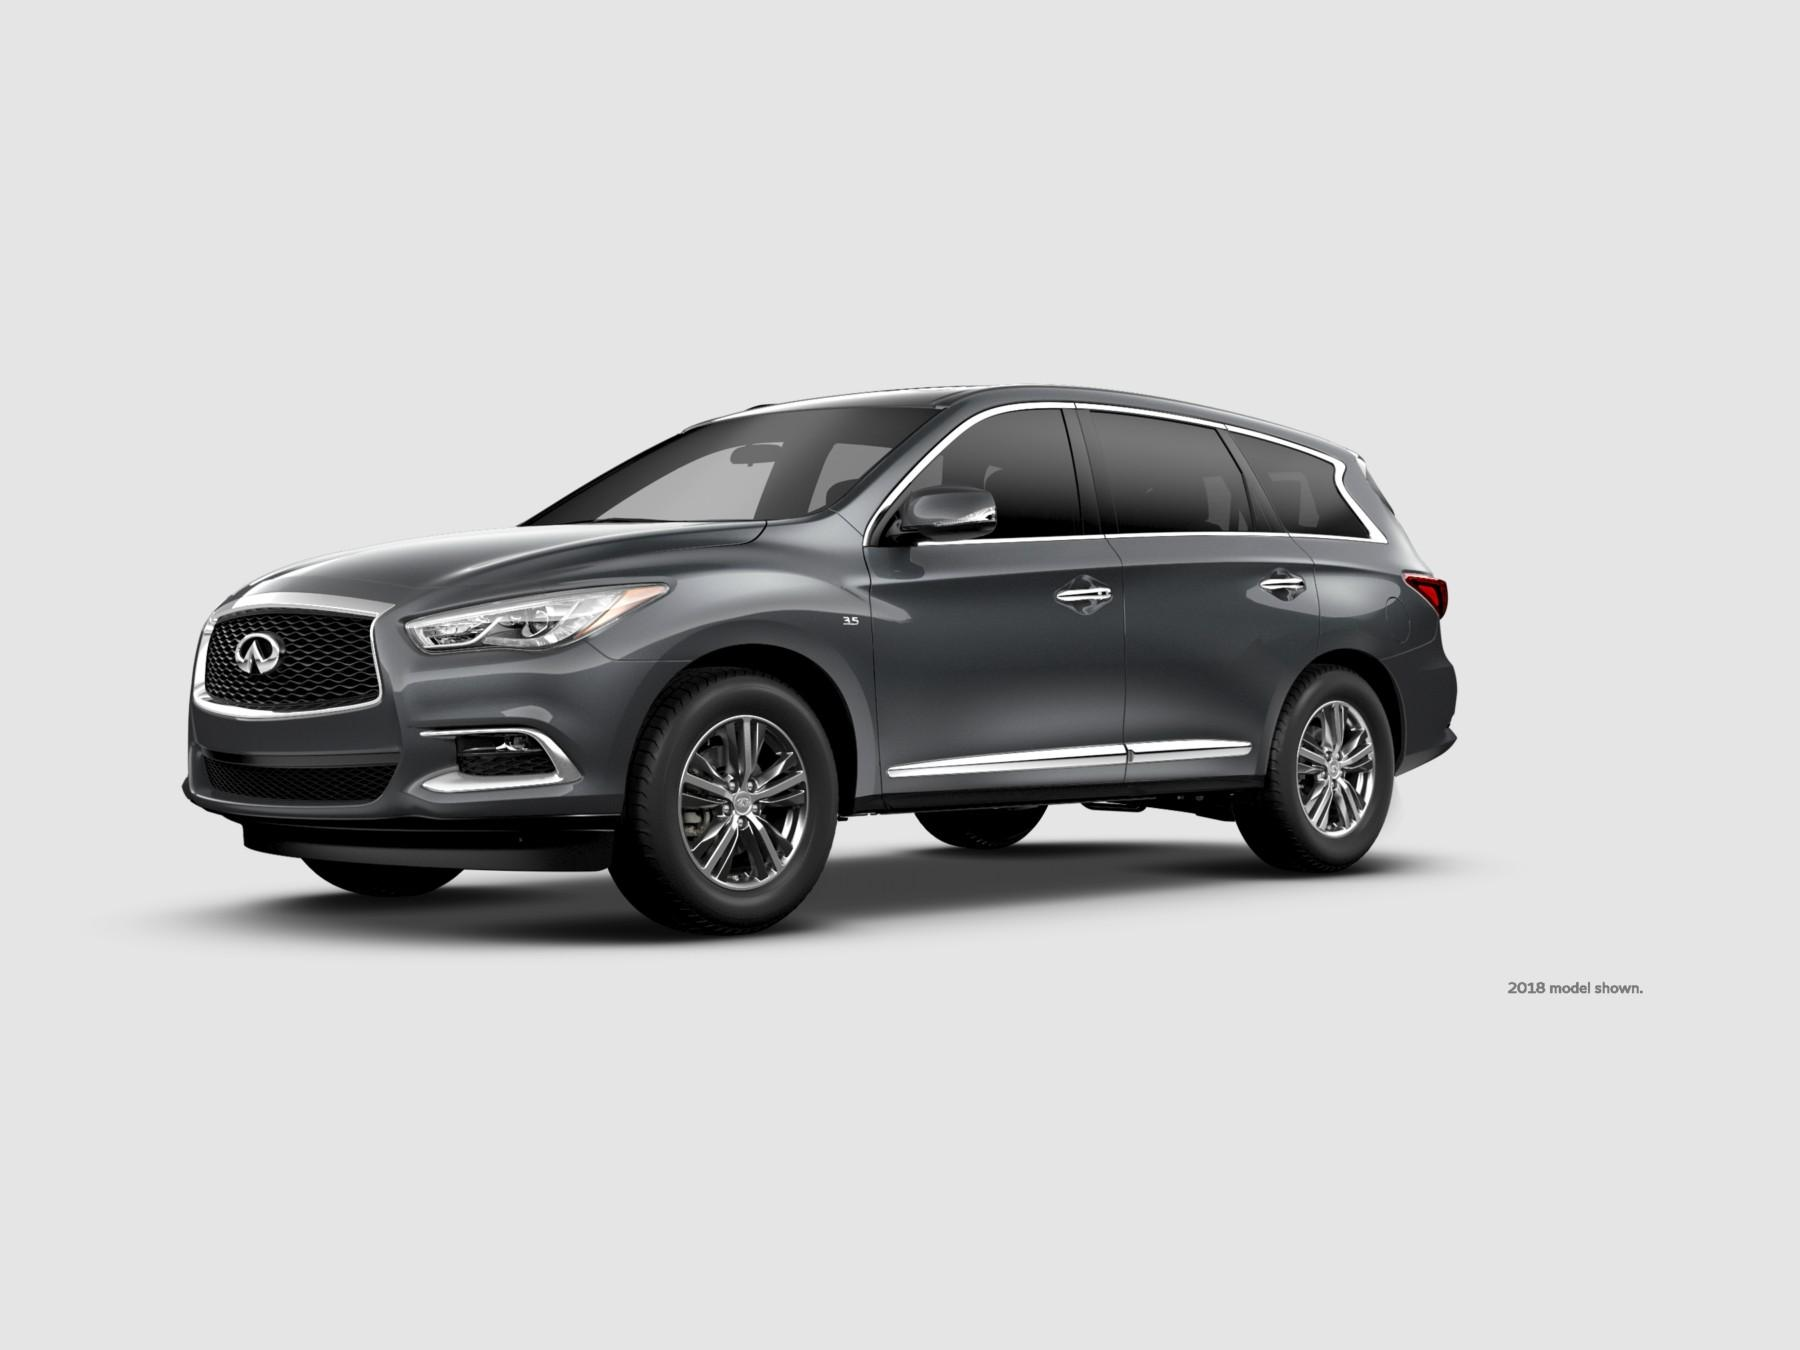 2019 INFINITI QX60 Vehicle Photo in Cerritos, CA 90703